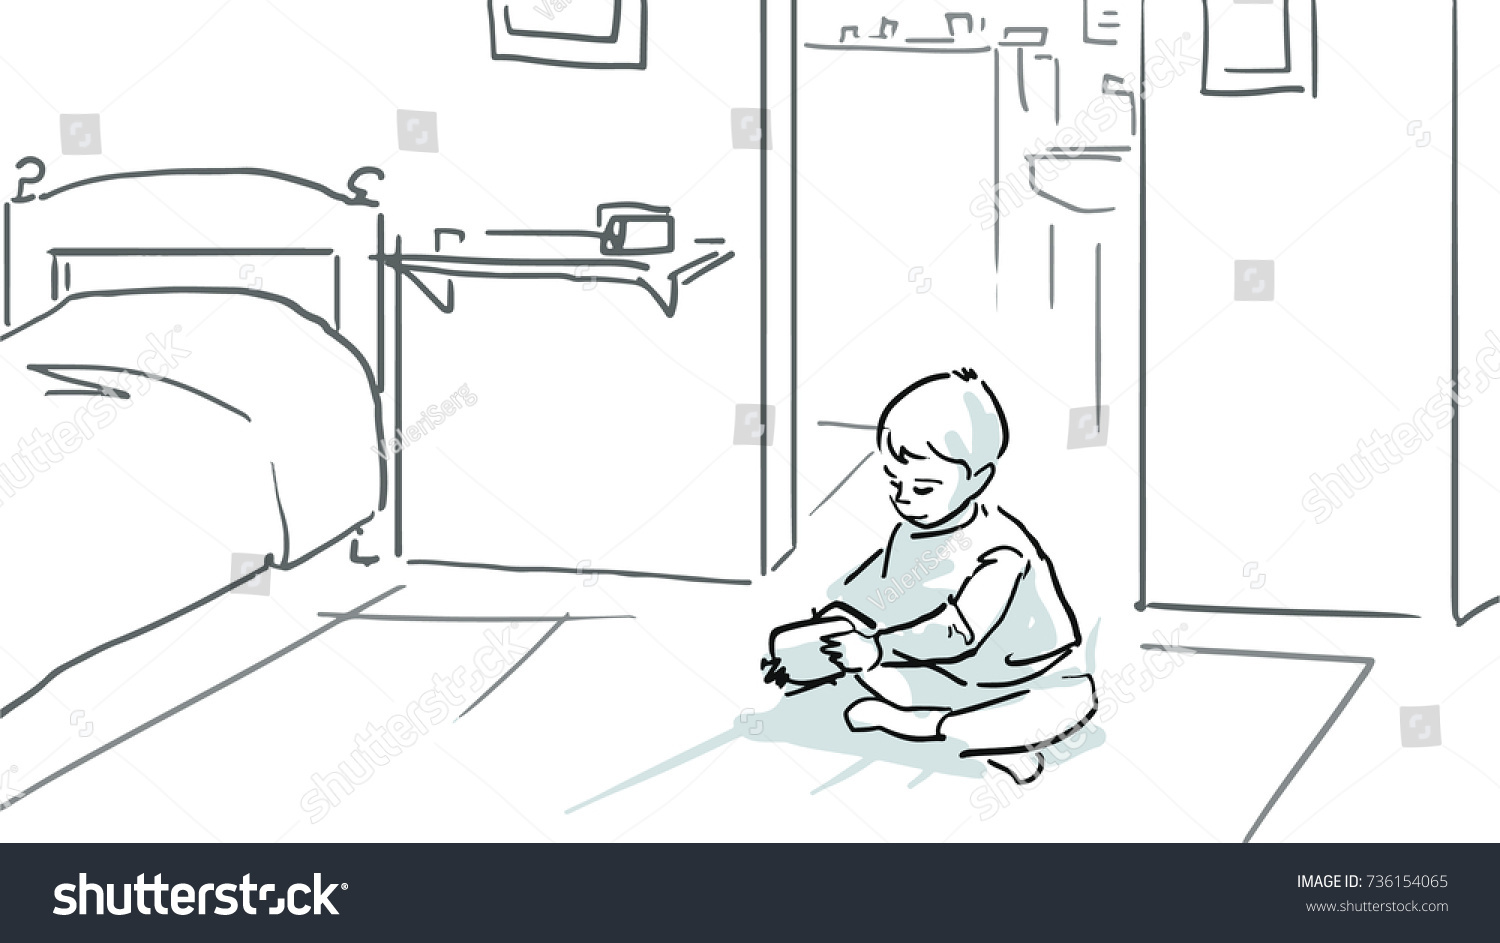 A little boy is sitting on a floor in a room and playing black and white